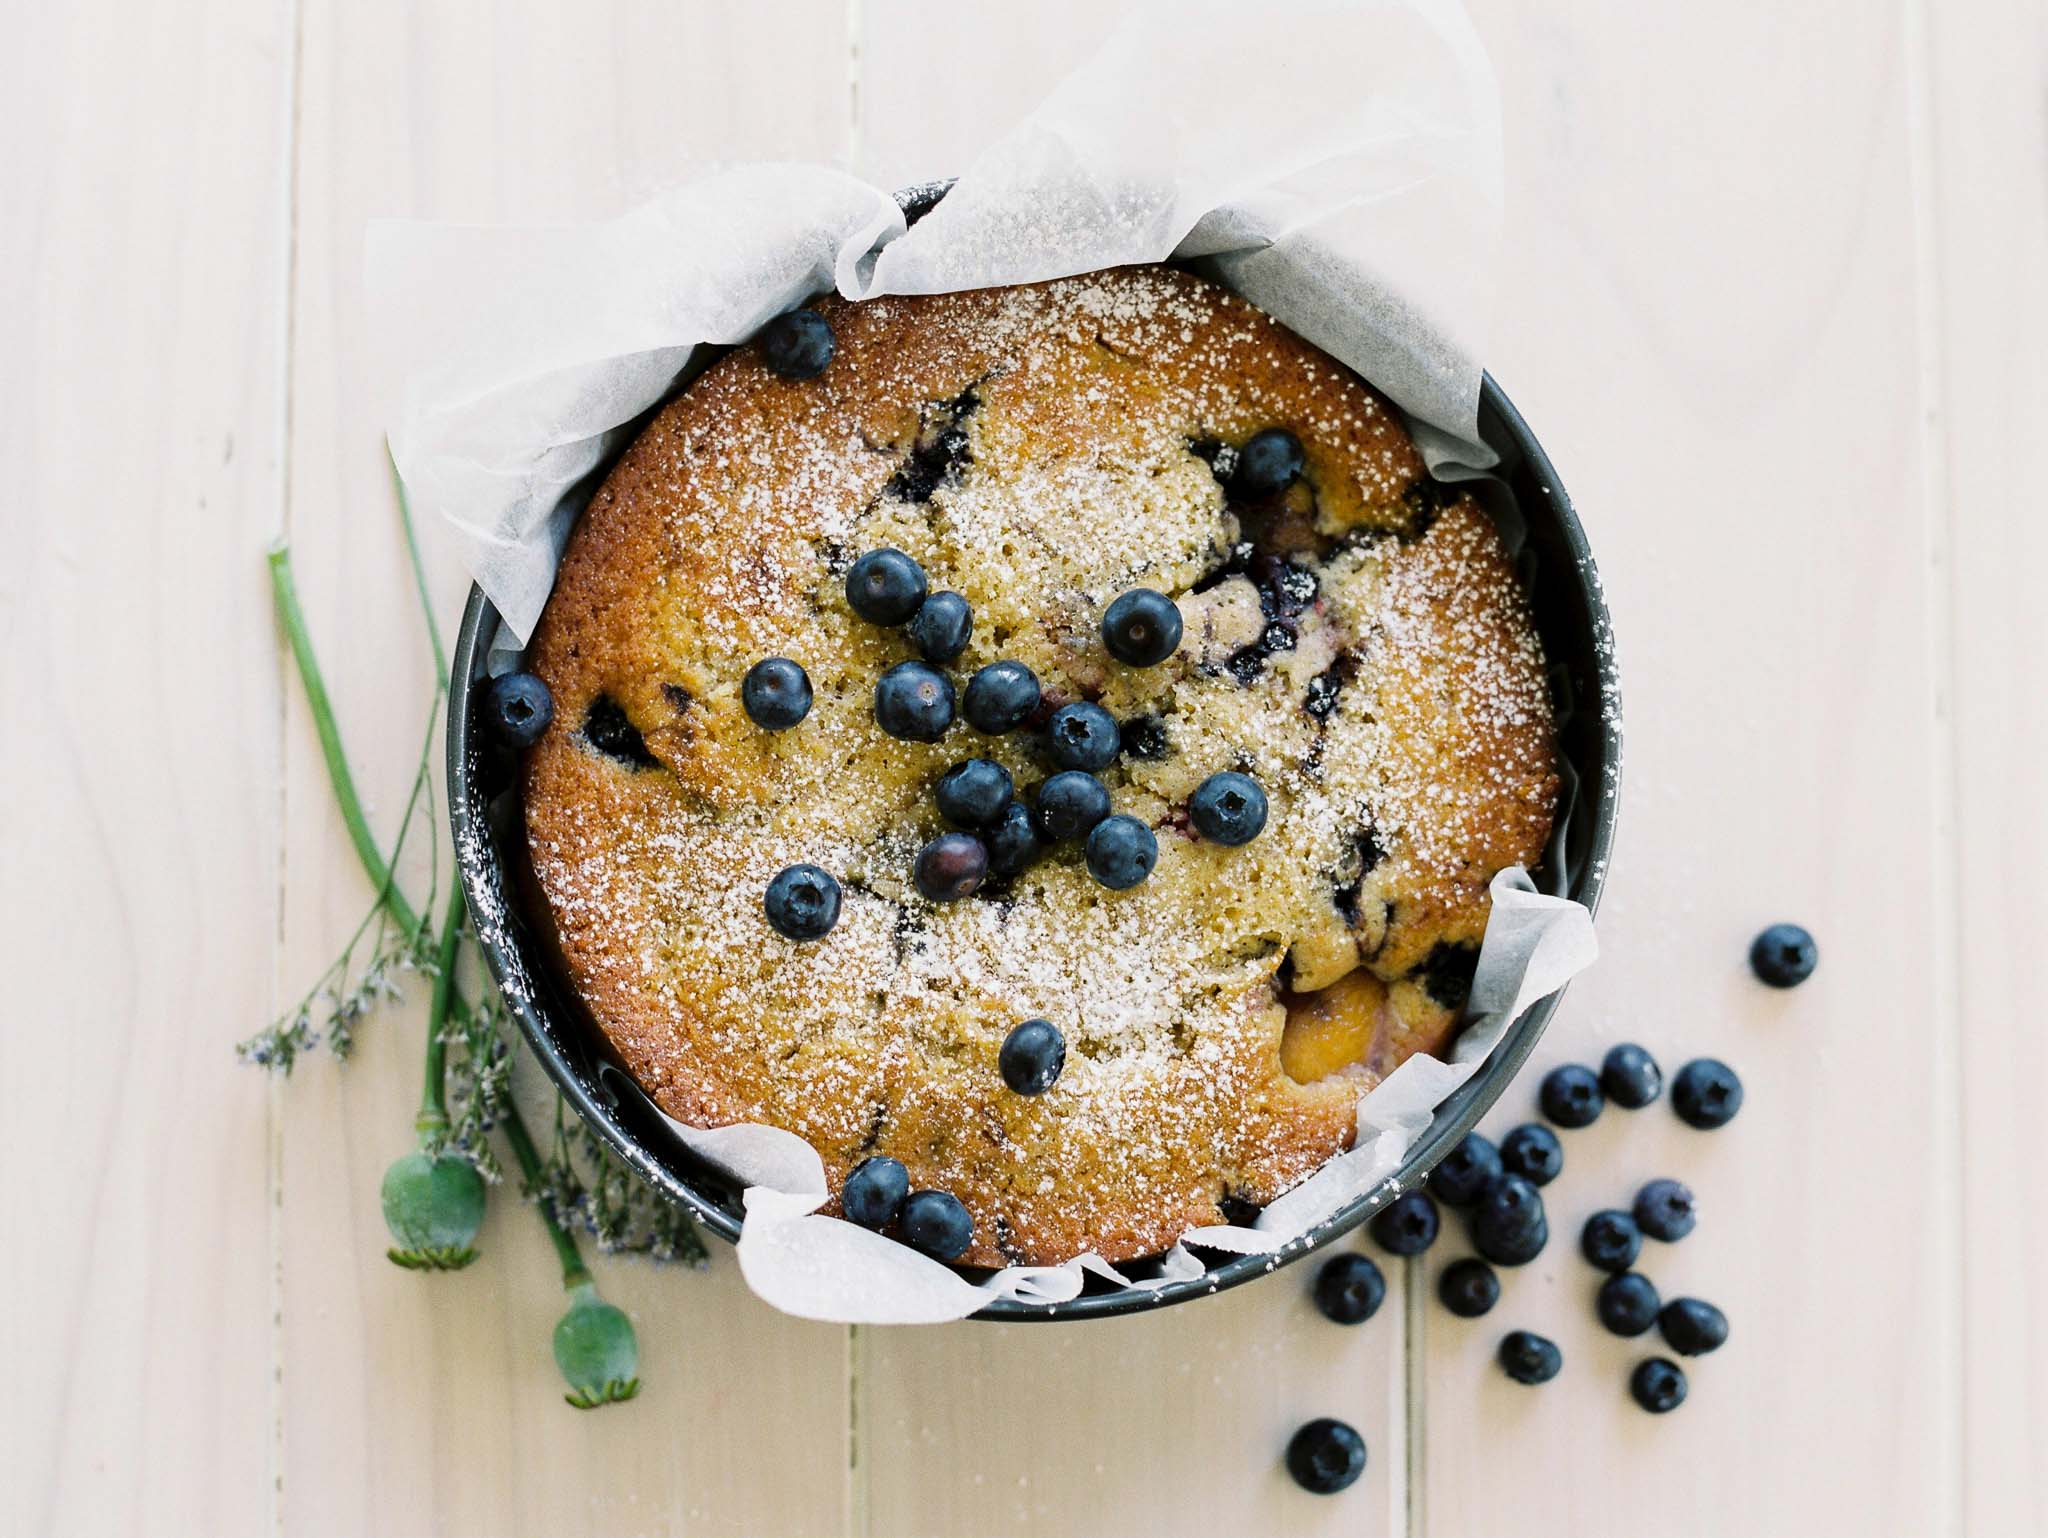 clairemossong_auckland-food-lifestyle-photographer (5 of 51).jpg